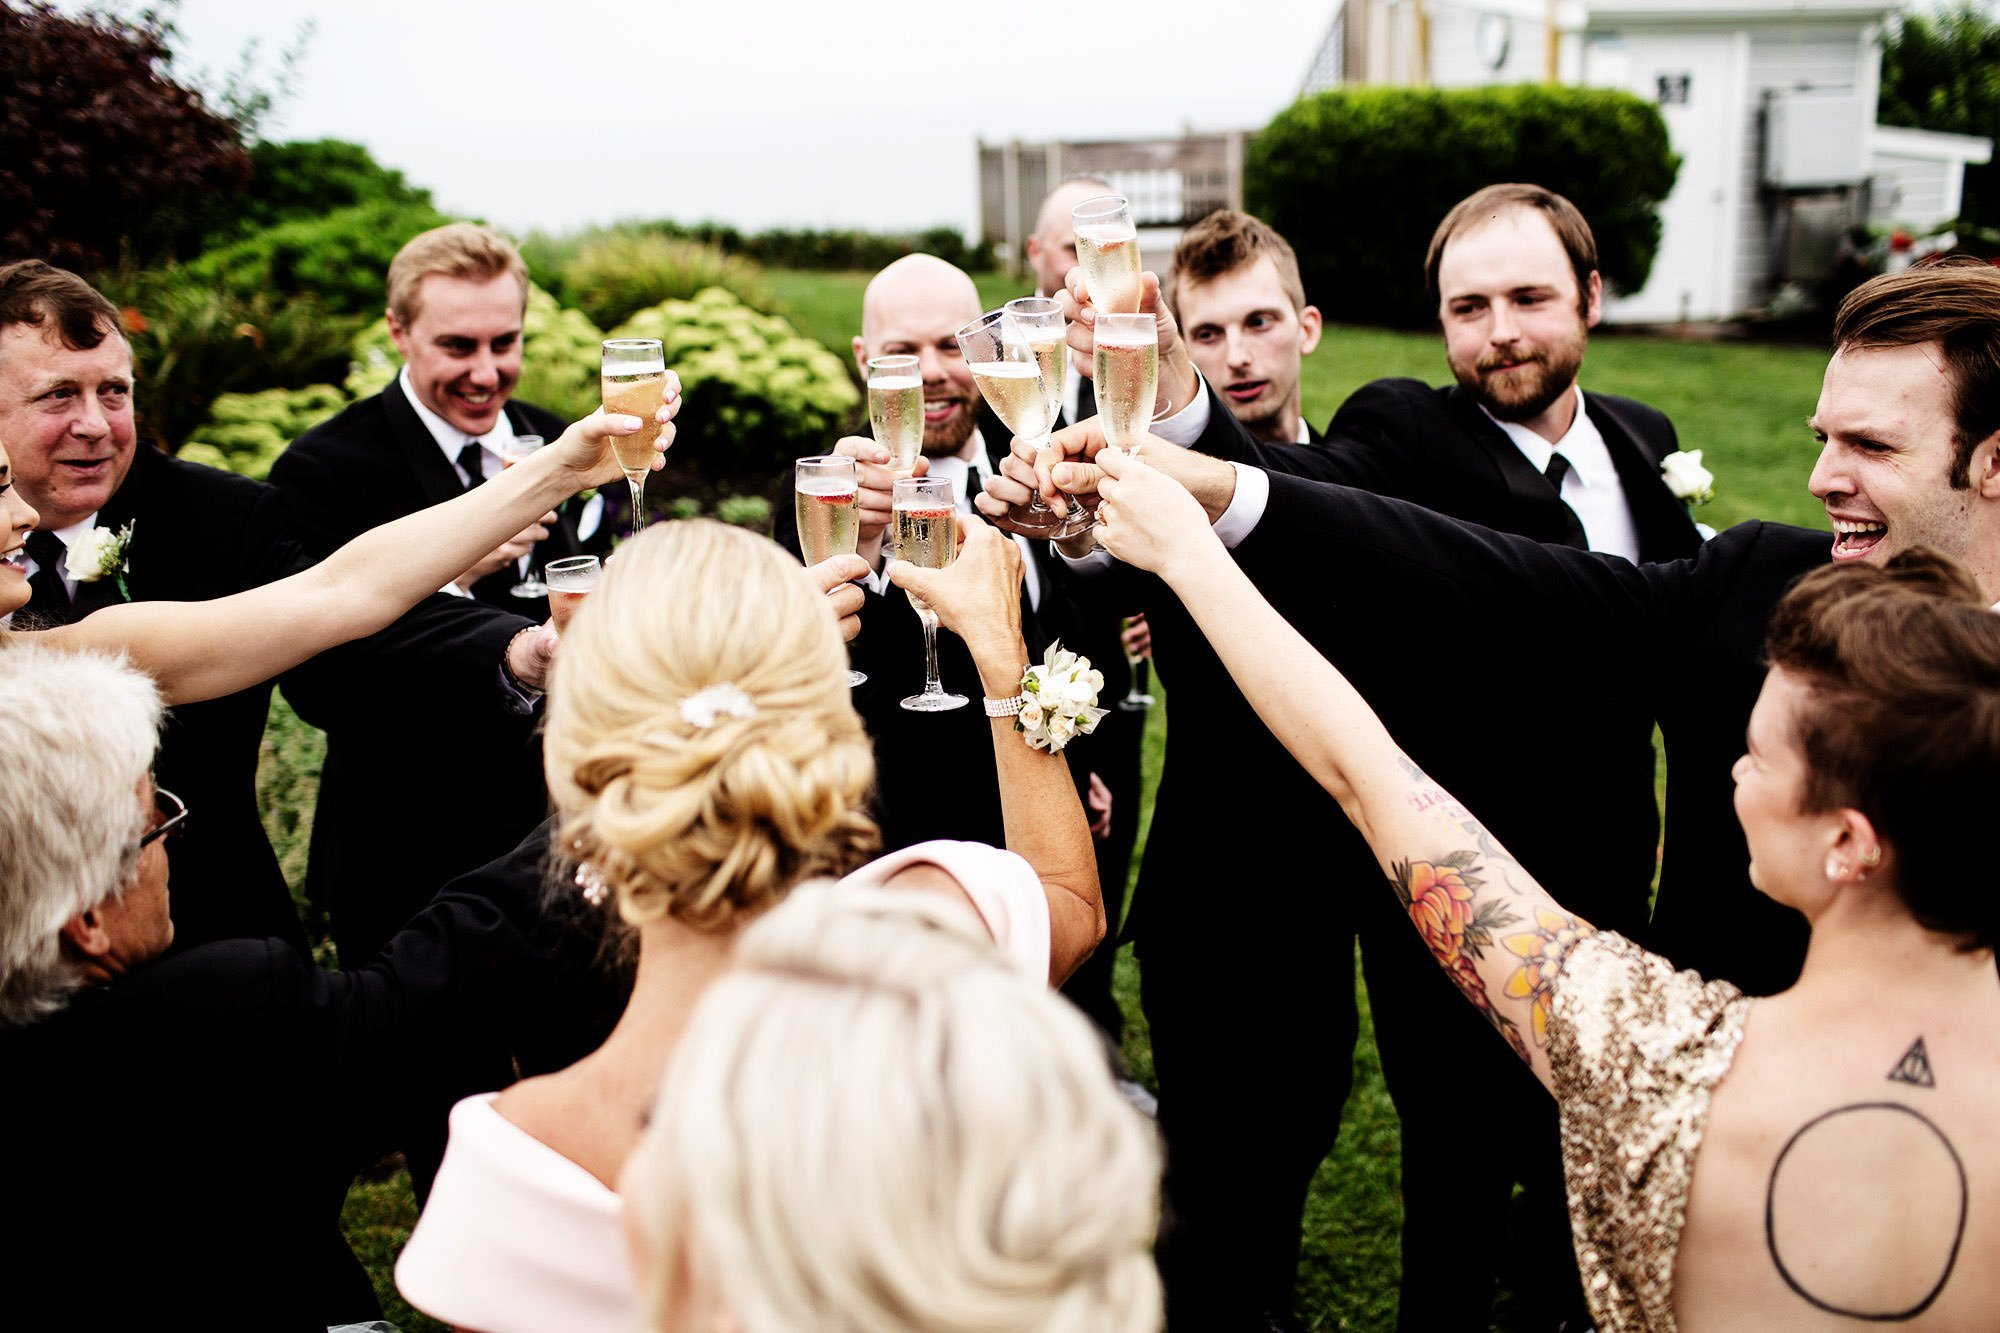 The wedding party toasts following the White Cliffs Country Club Wedding ceremony.